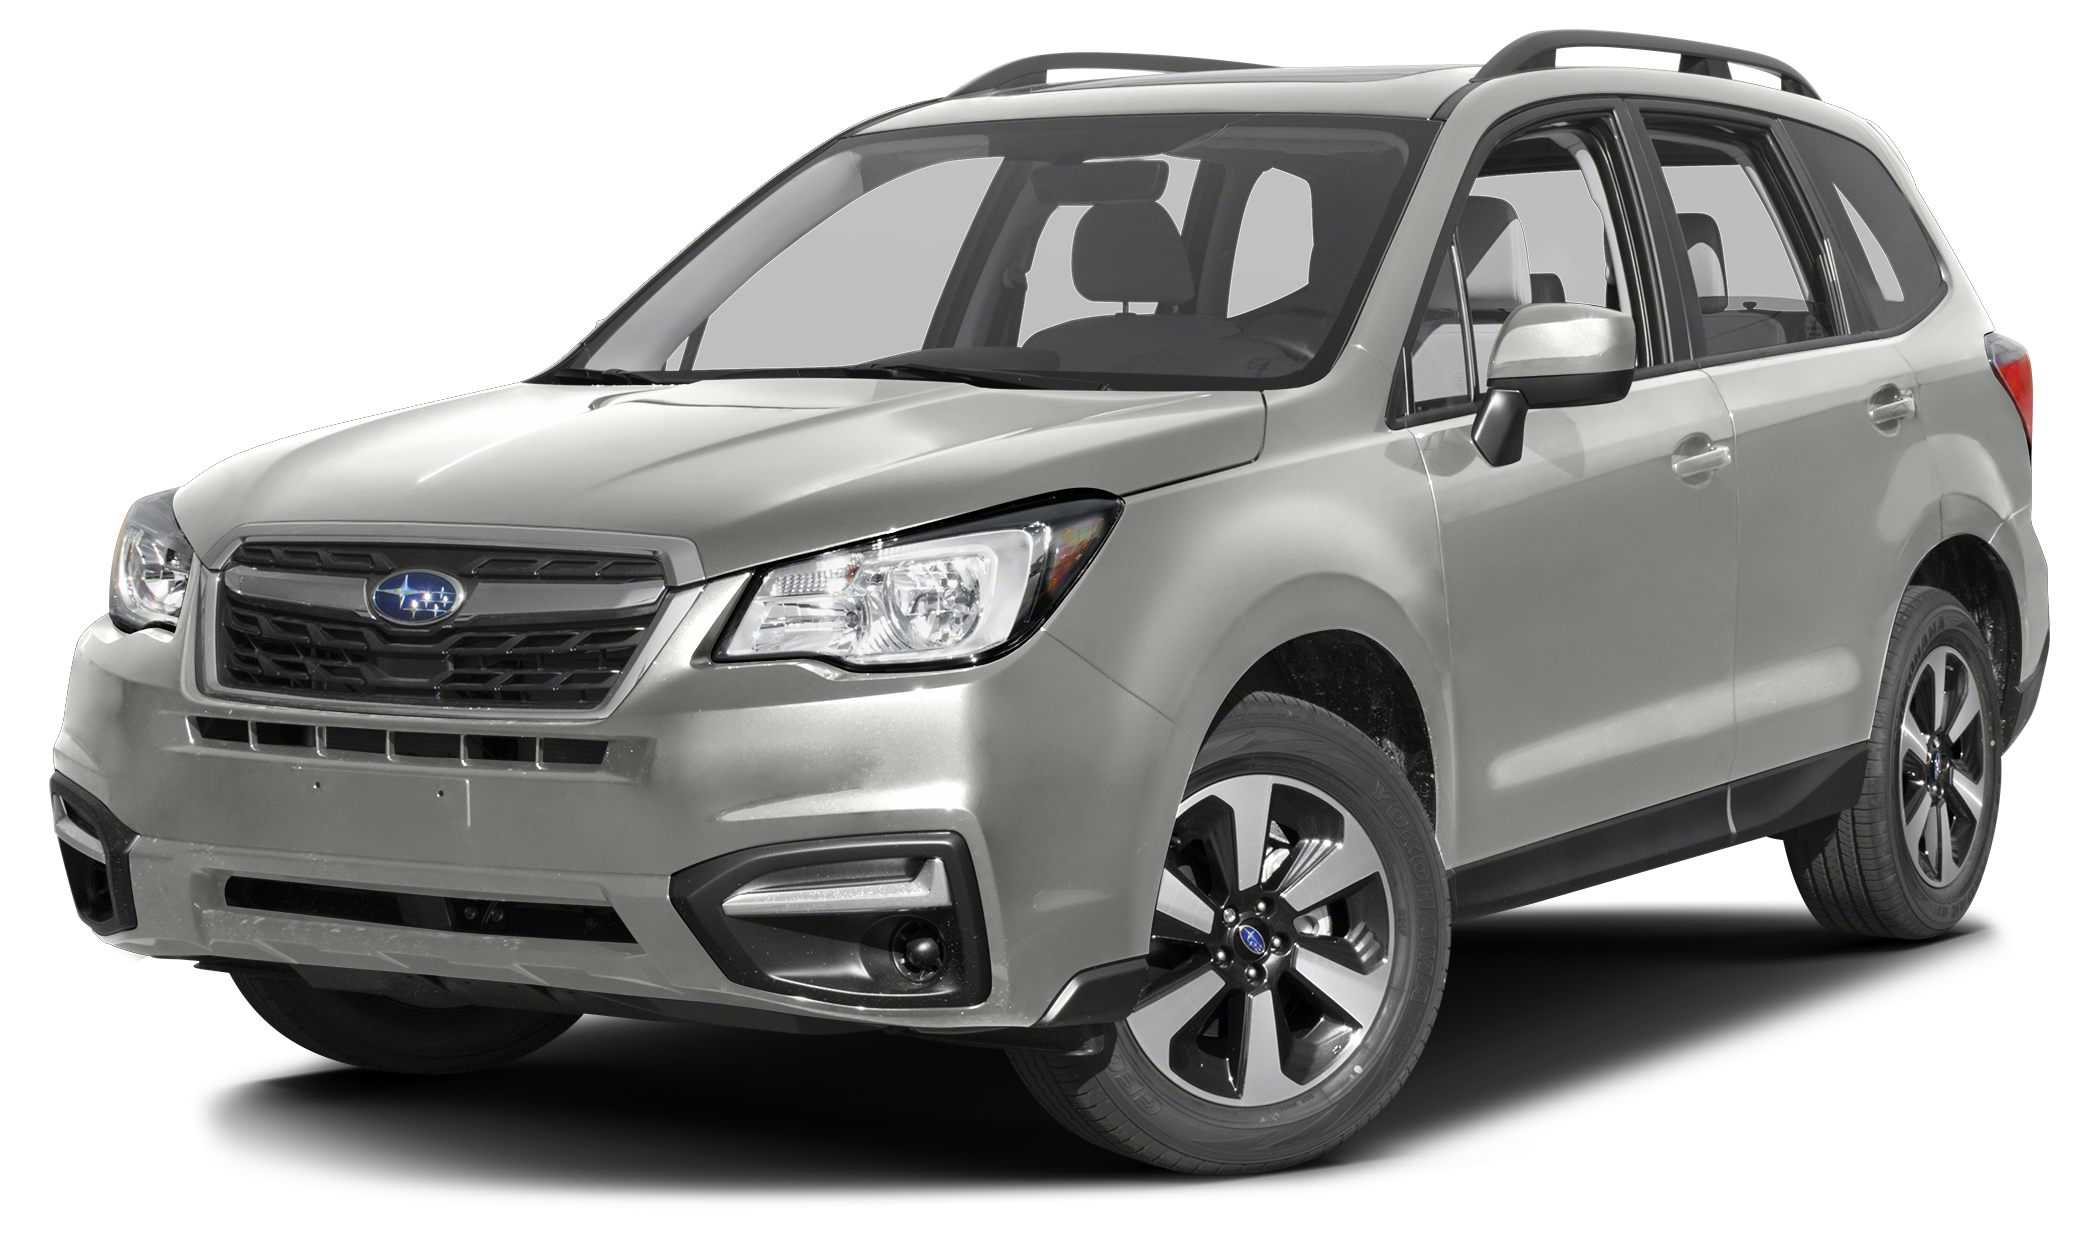 2017 subaru forester for sale in akron oh jf2sjagc6hh588156. Black Bedroom Furniture Sets. Home Design Ideas